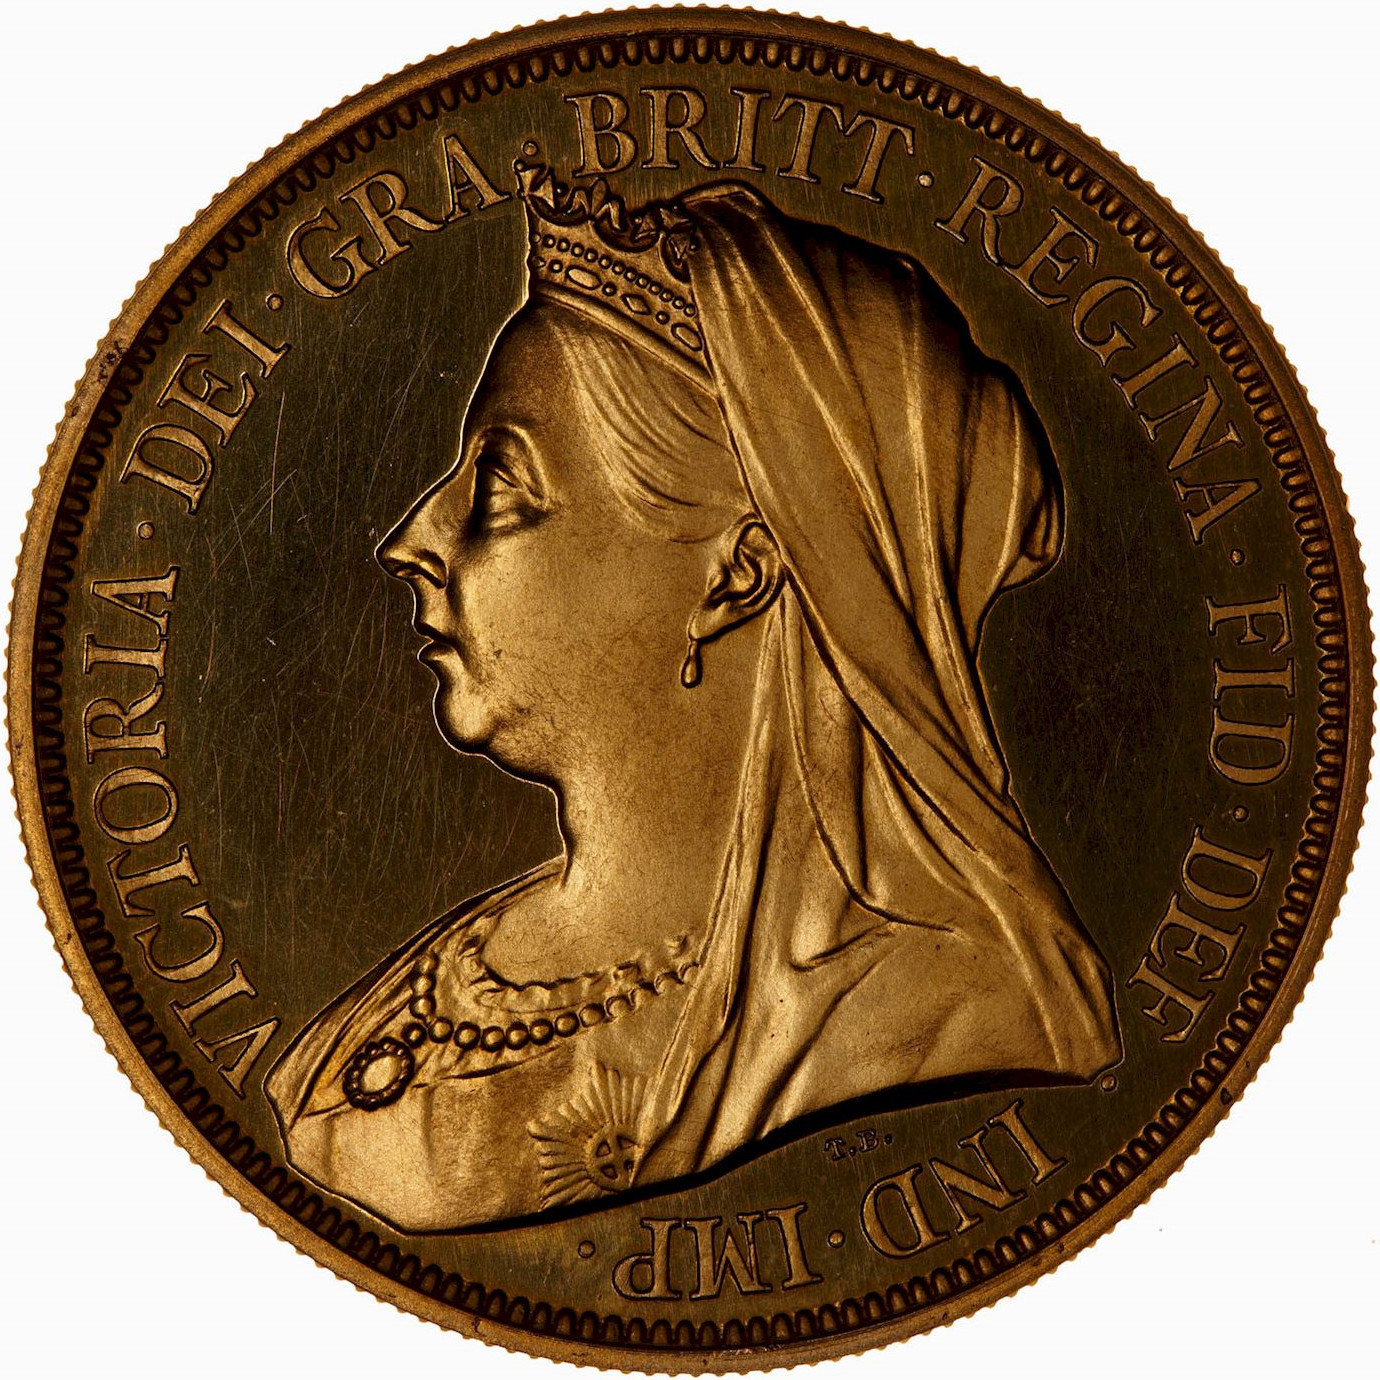 Five Pounds (Pre-decimal): Photo Proof Coin - 5 Pounds, Queen Victoria, Great Britain, 1893